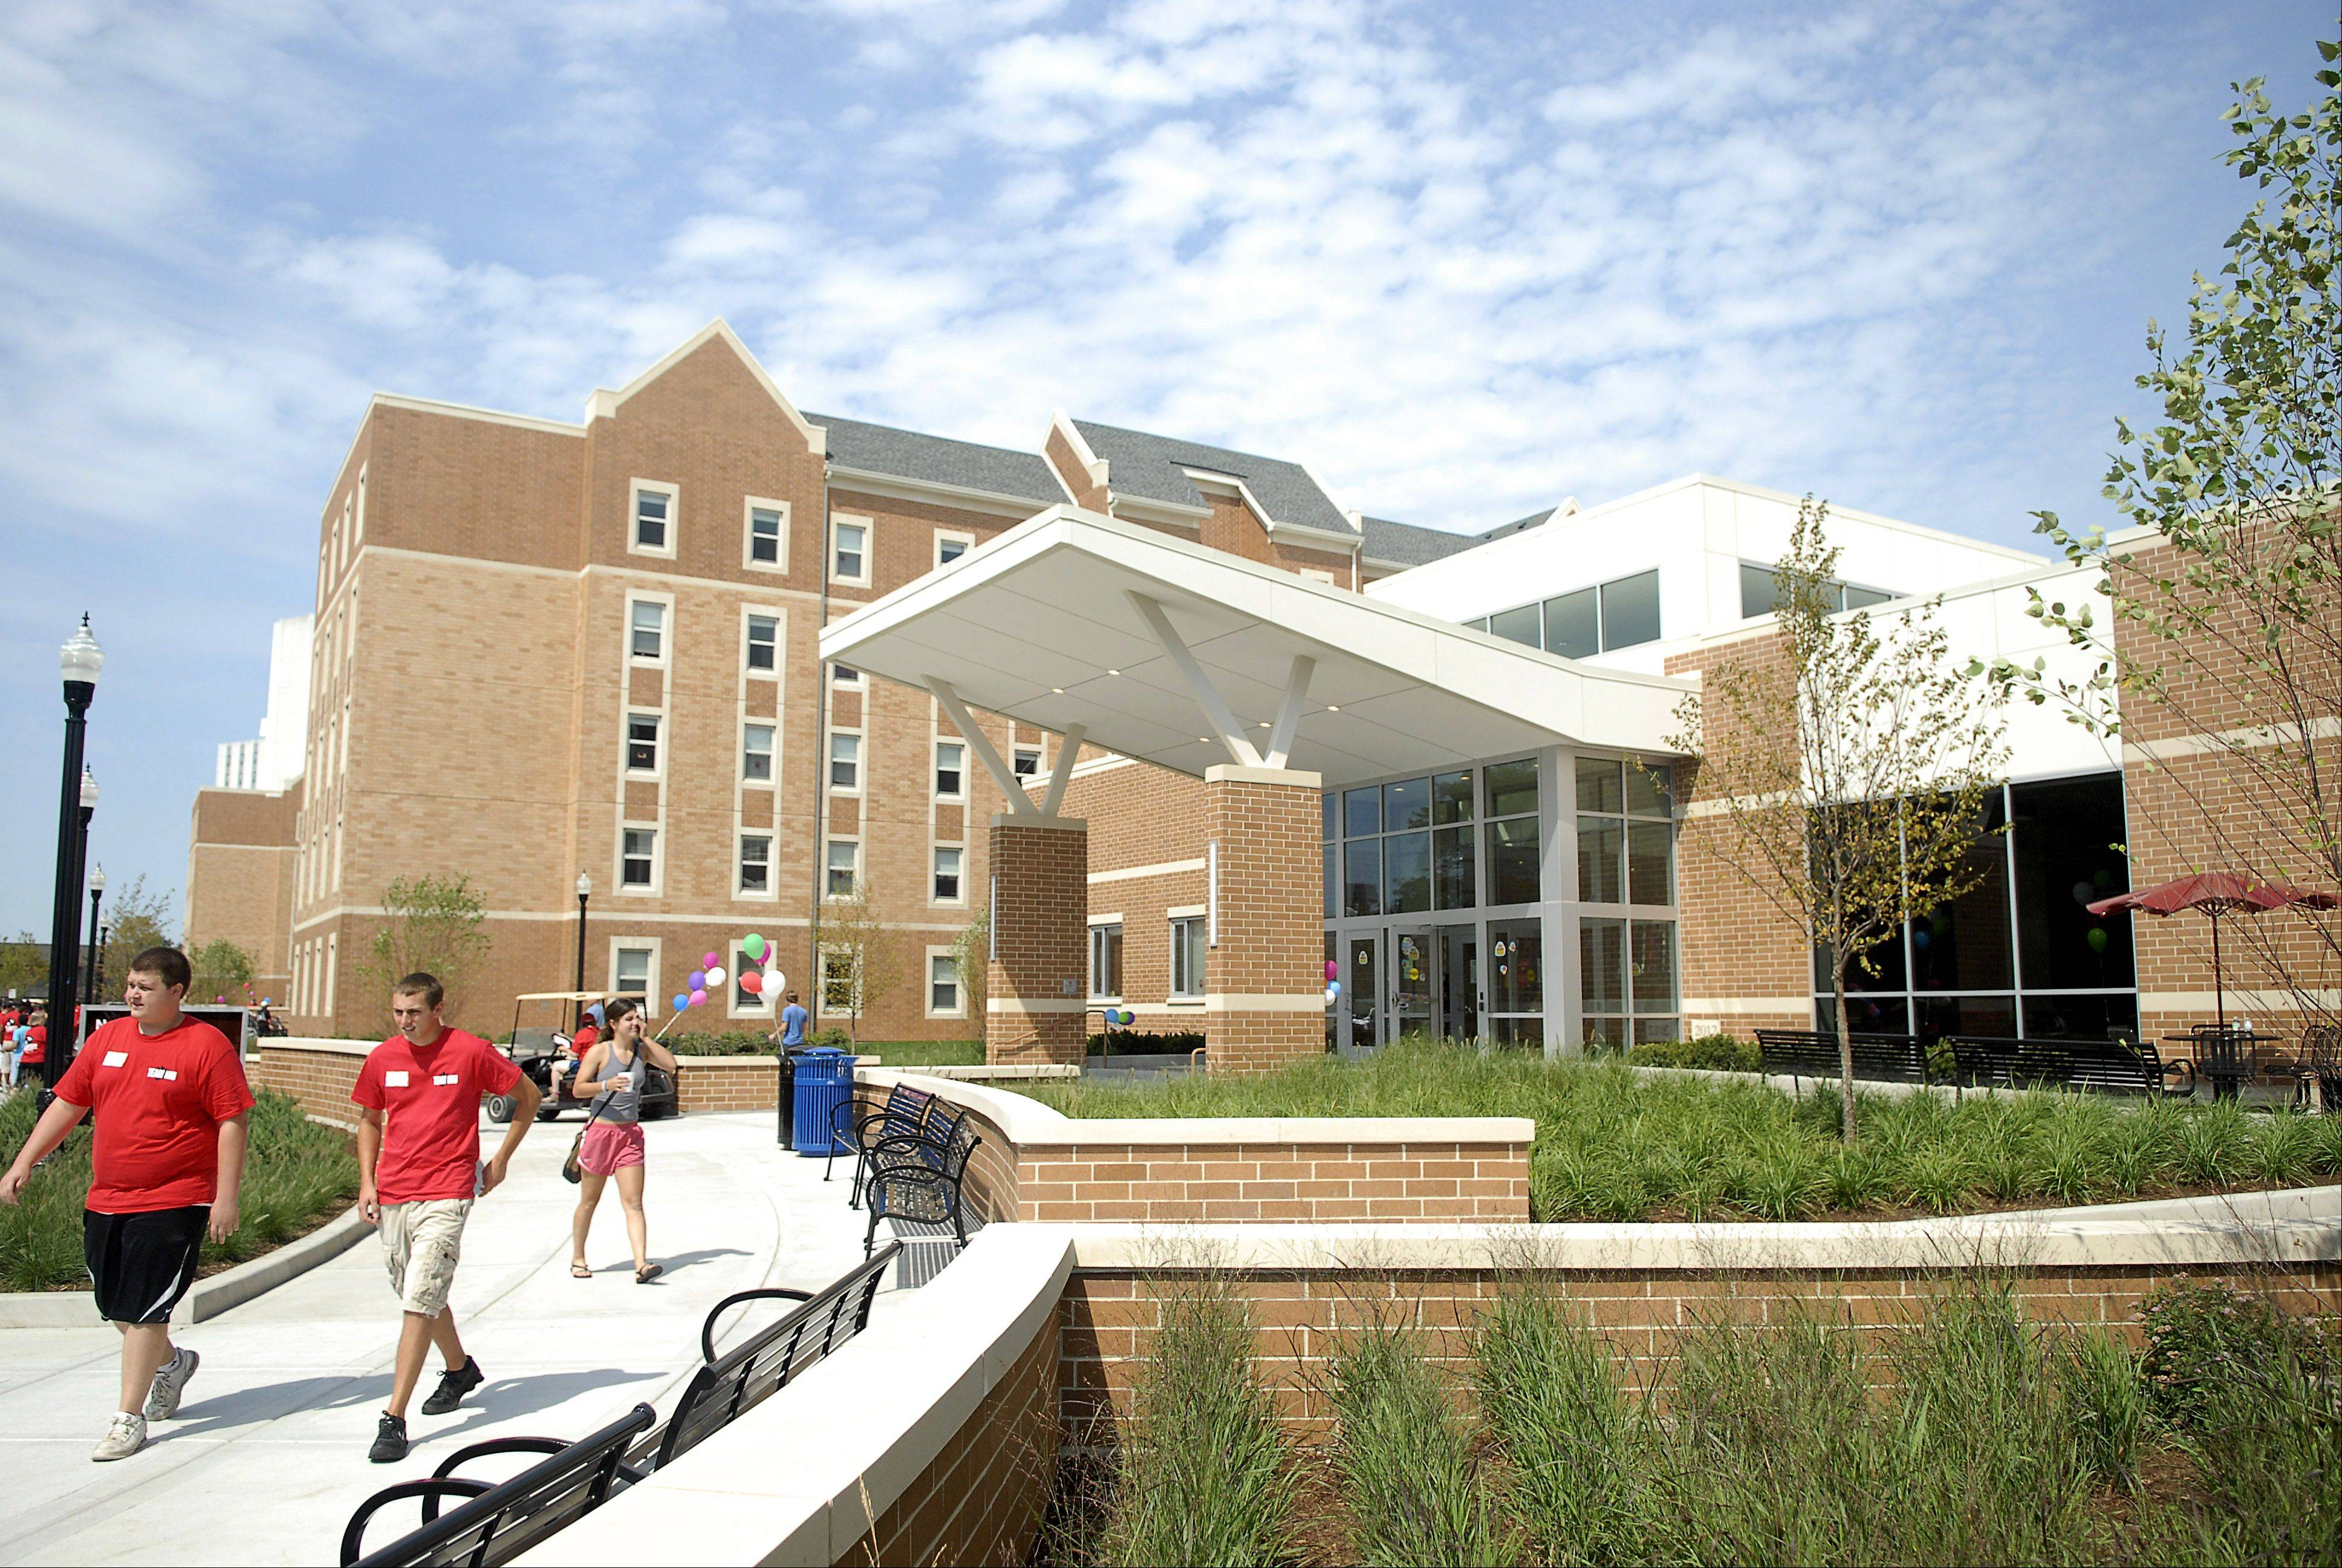 The New Residence Hall Community Center is located between New Residence Hall East and New Residence Hall West at NIU. A cafeteria is located in the building.